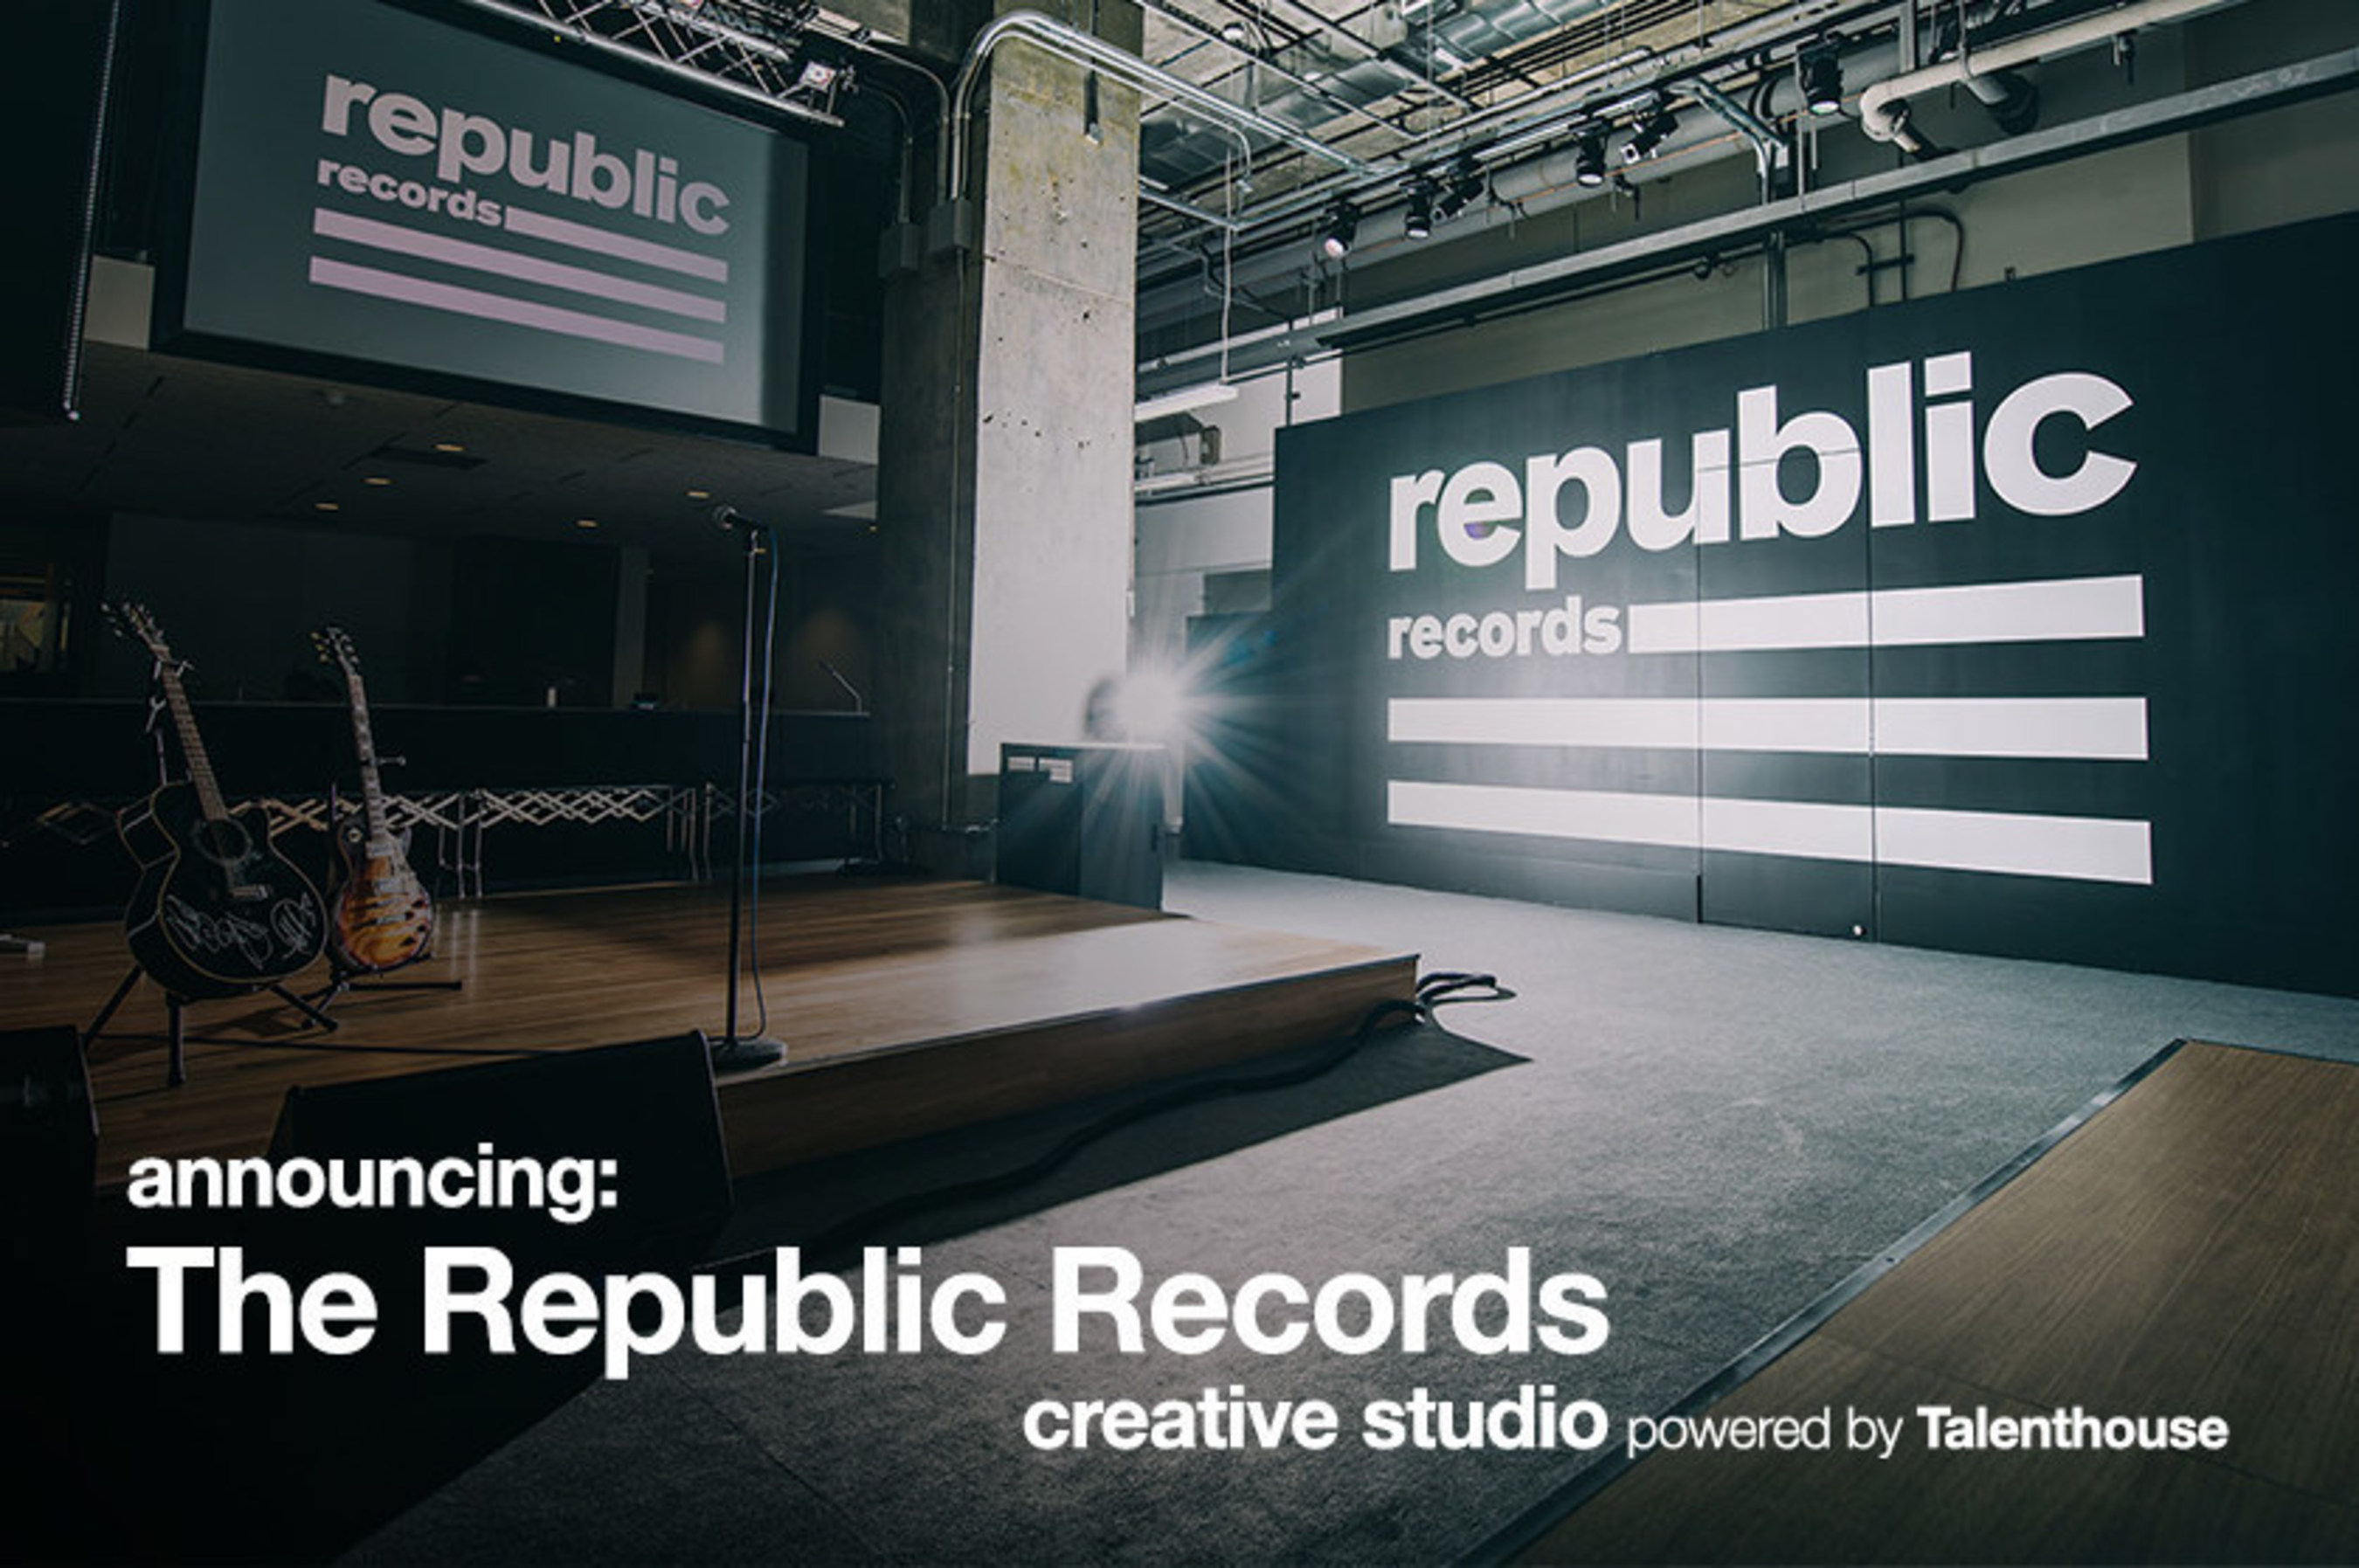 REPUBLIC RECORDS ANNOUNCES CO-CREATION PLATFORM IN PARTNERSHIP WITH TALENTHOUSE